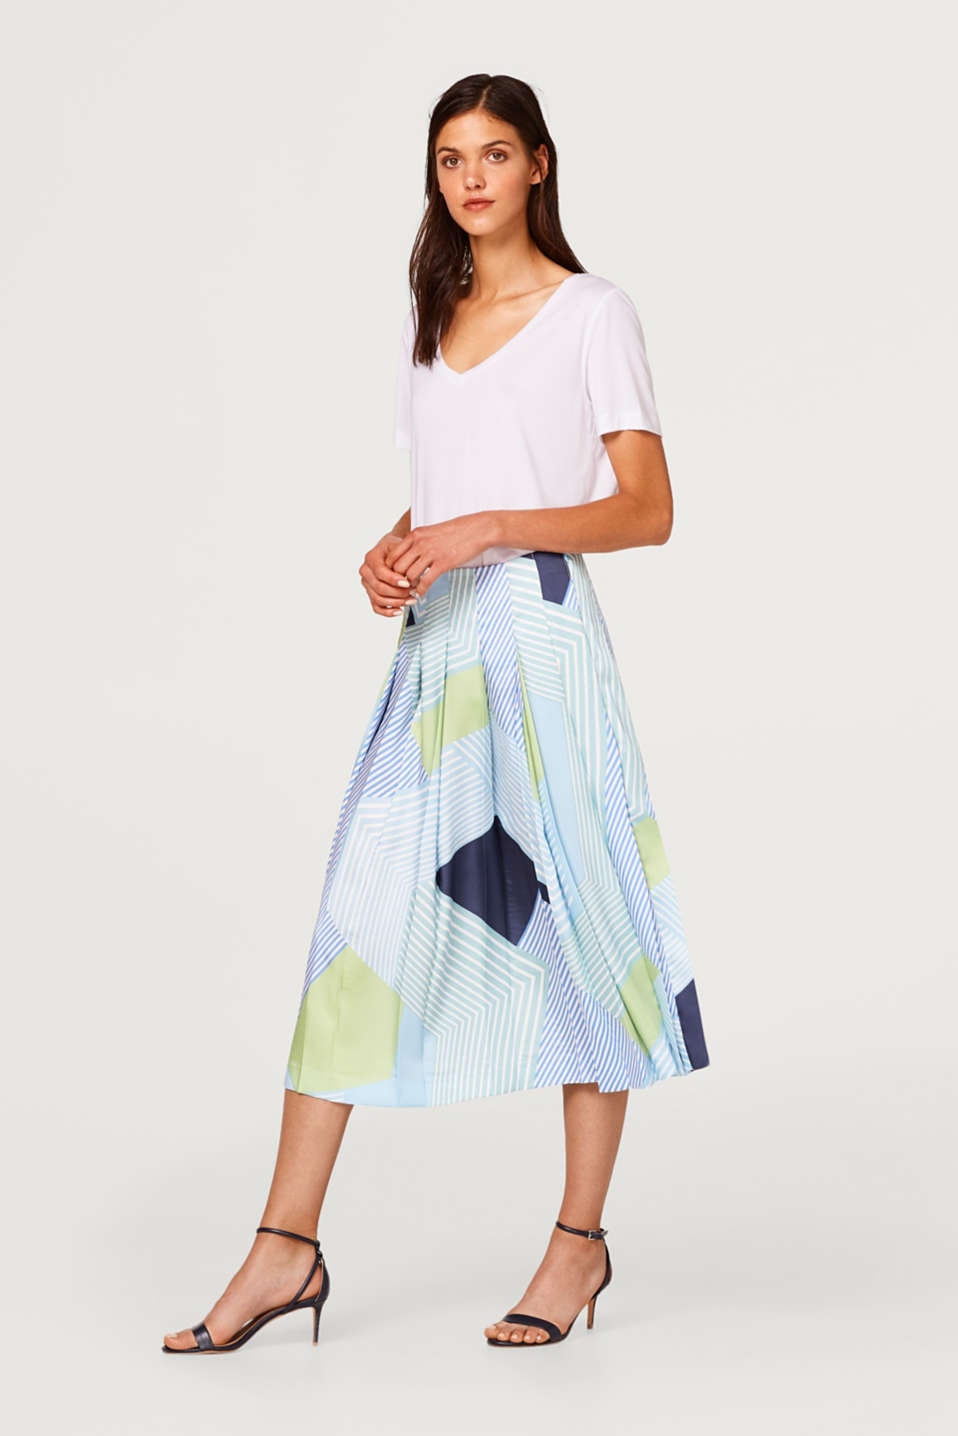 Shimmery pleated skirt in a mix of stripes